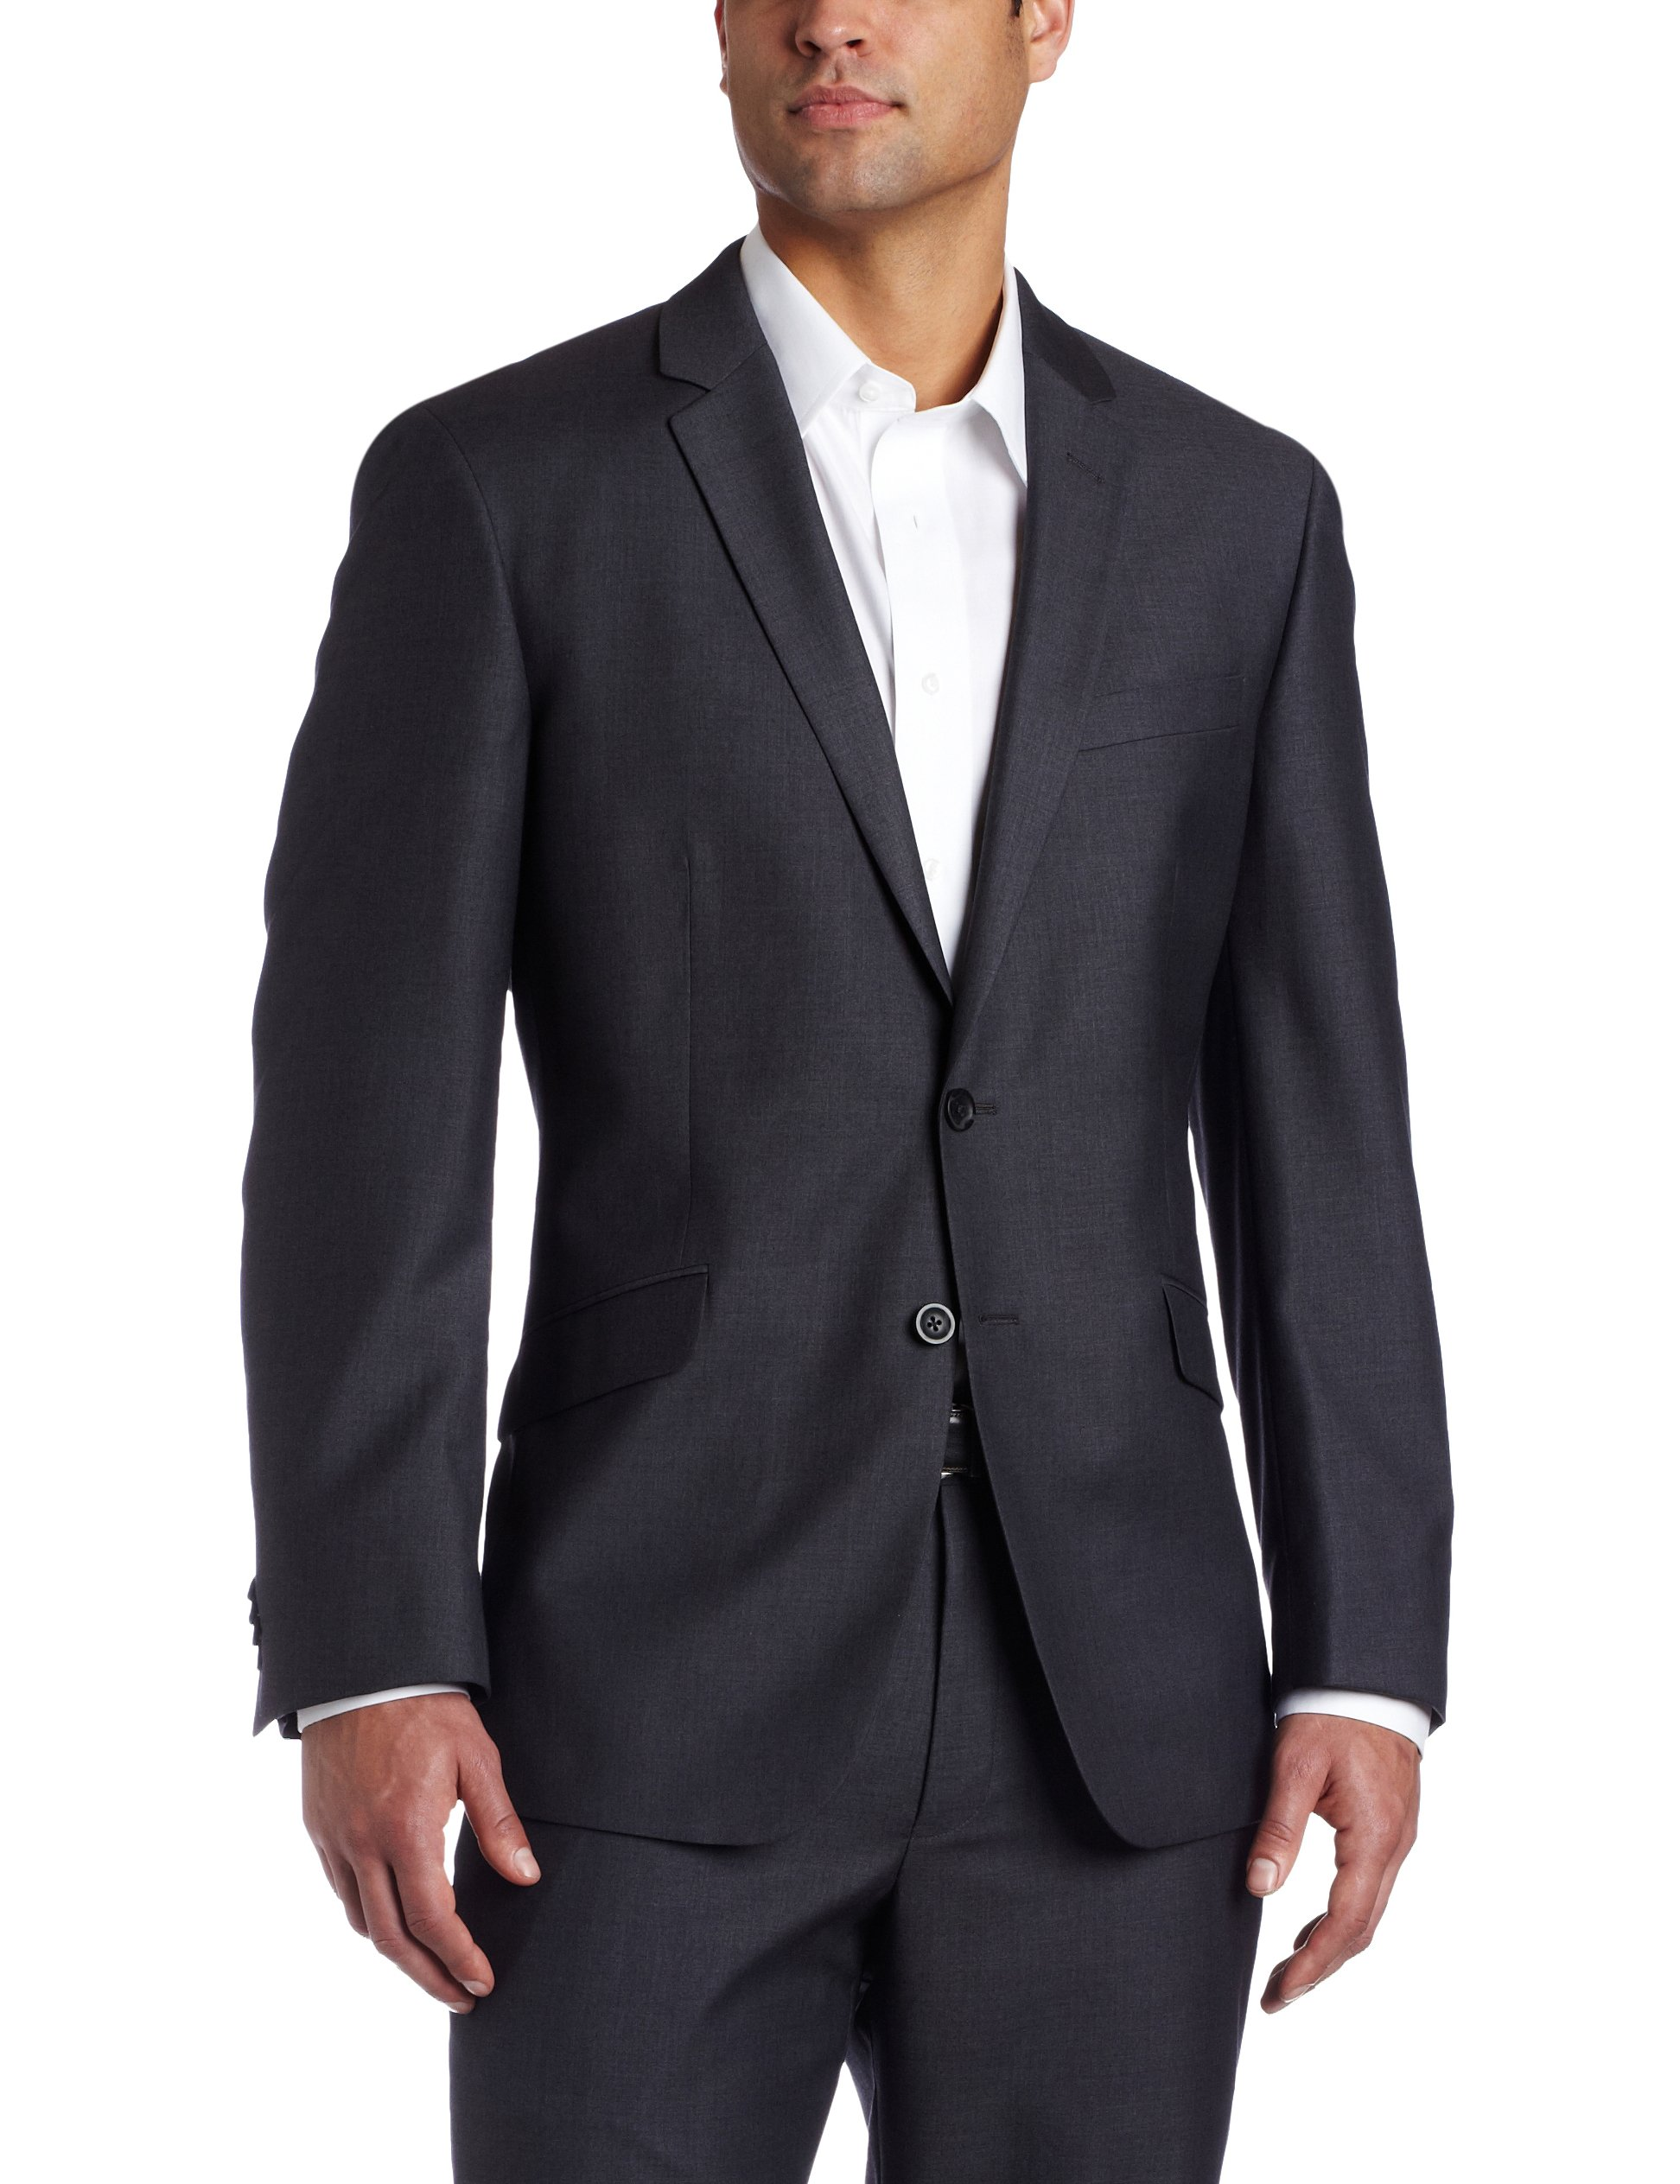 Kenneth Cole REACTION Men's Grey Solid Suit Separate Jacket, Gray, 44 S